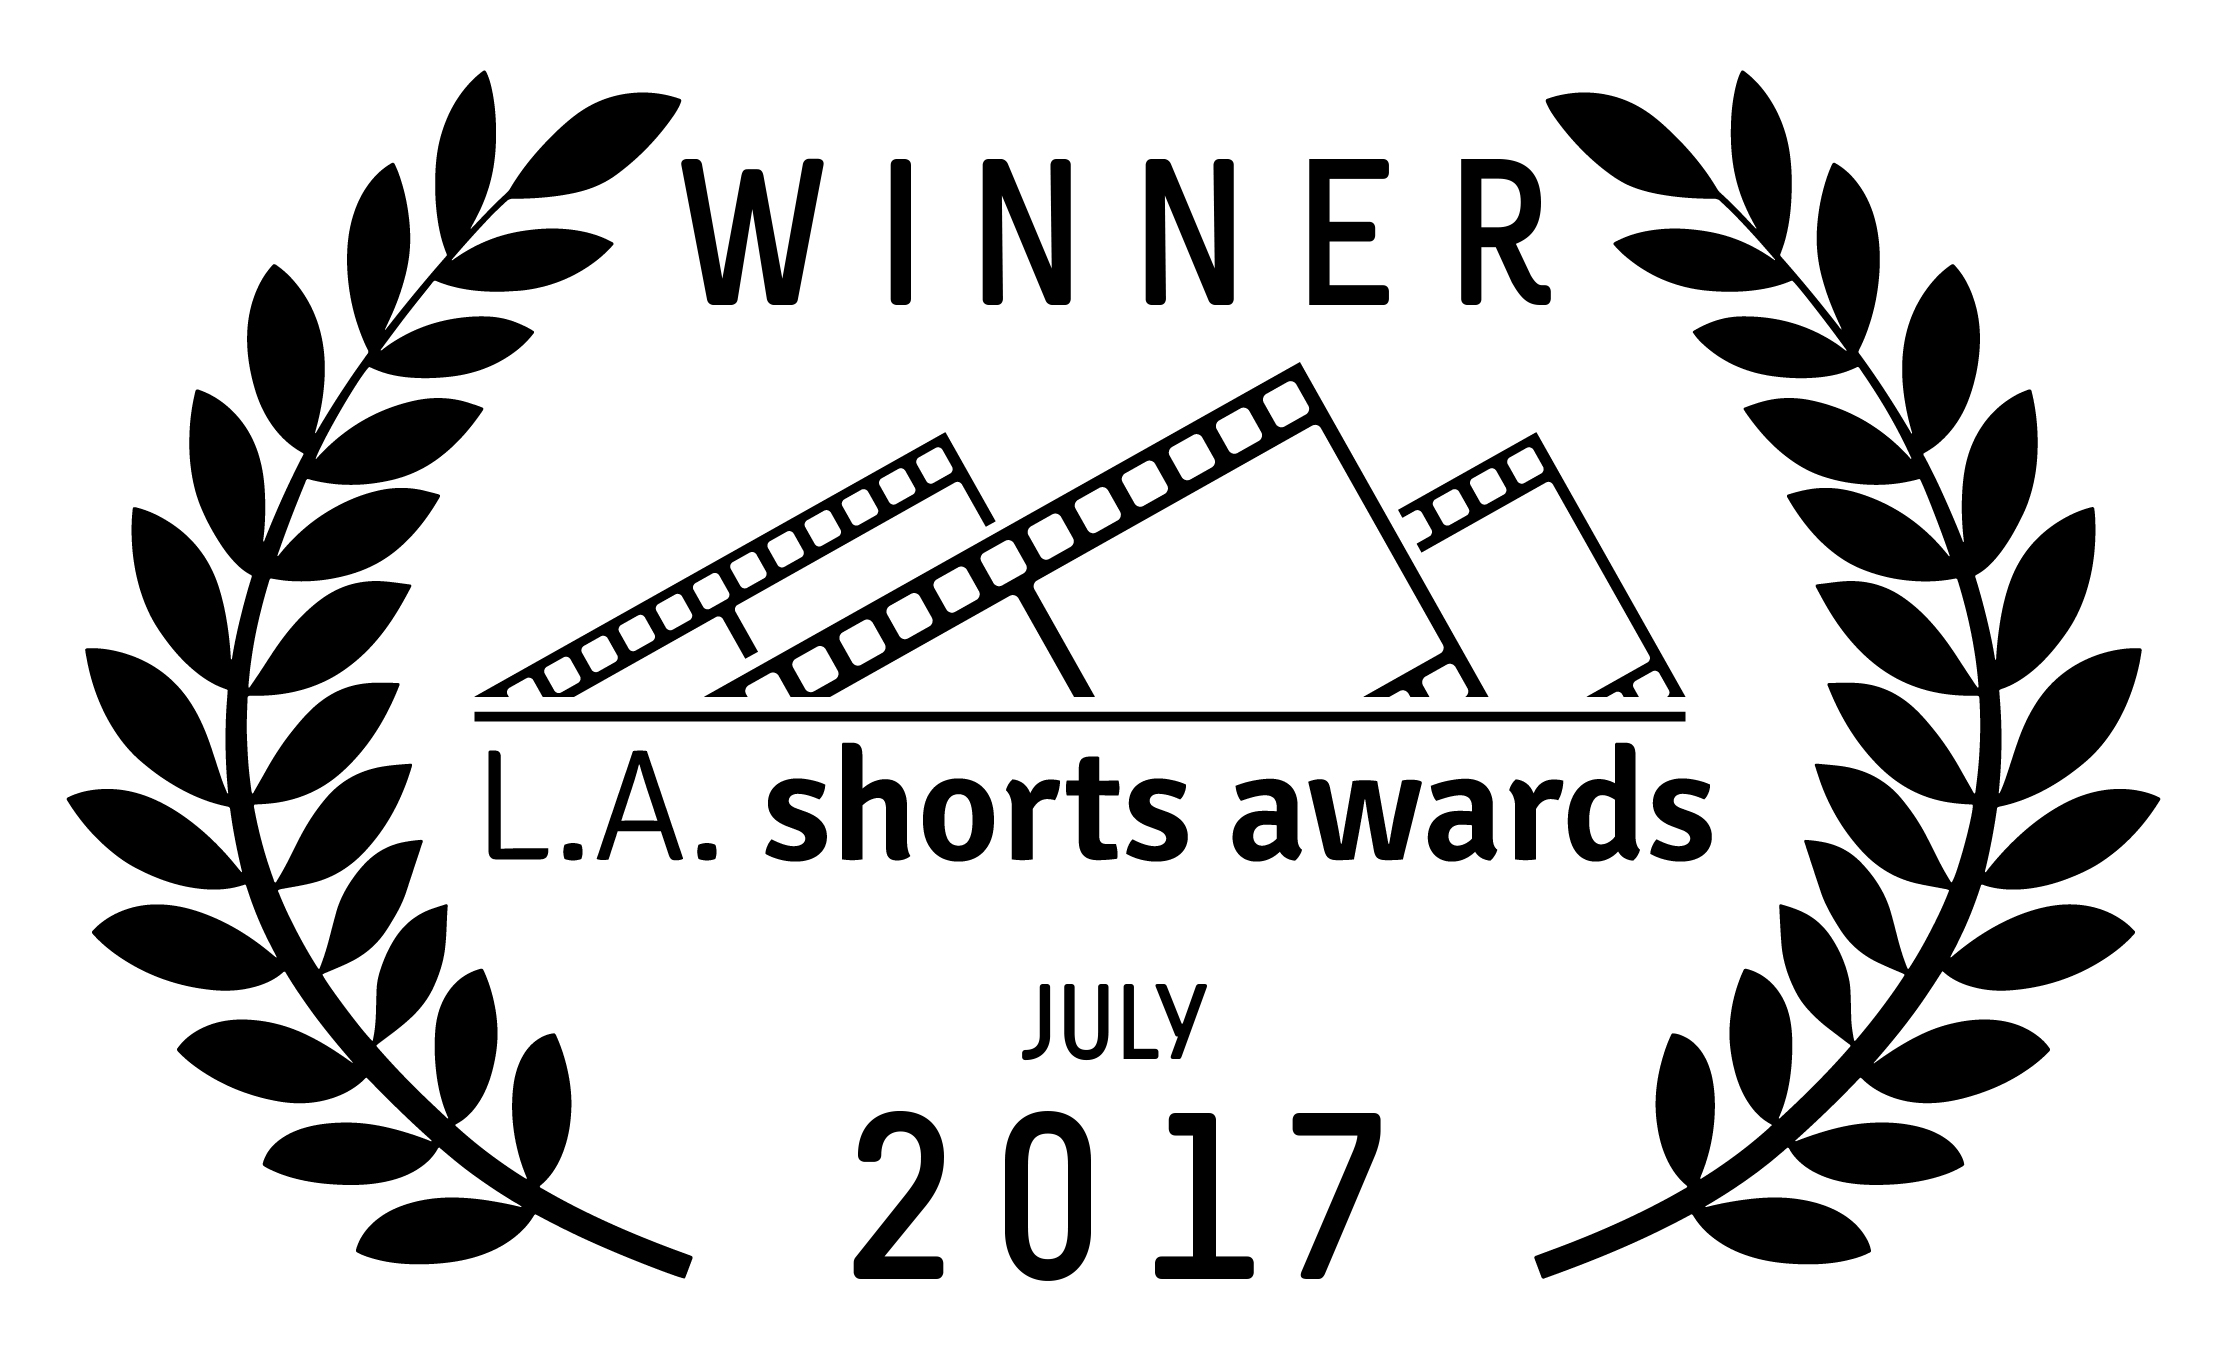 LASA_Winner_Laurel_July_2017.jpg